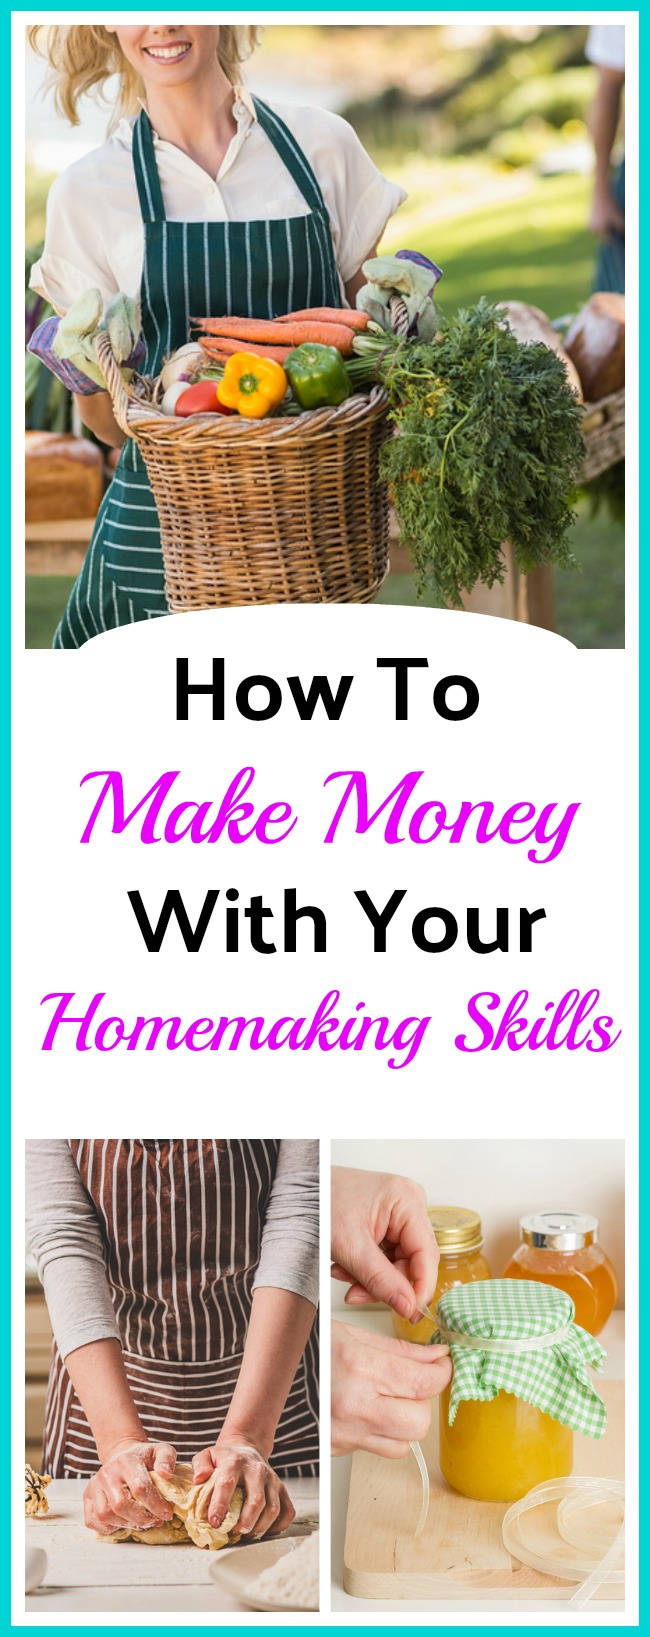 How To Make Money With Your Homemaking Skills - By getting creative you can earn money with the same homemaking skills you use every day to care for your home and family! Frugal living   Ways to make money   Living on a Budget   Homemaker Tips